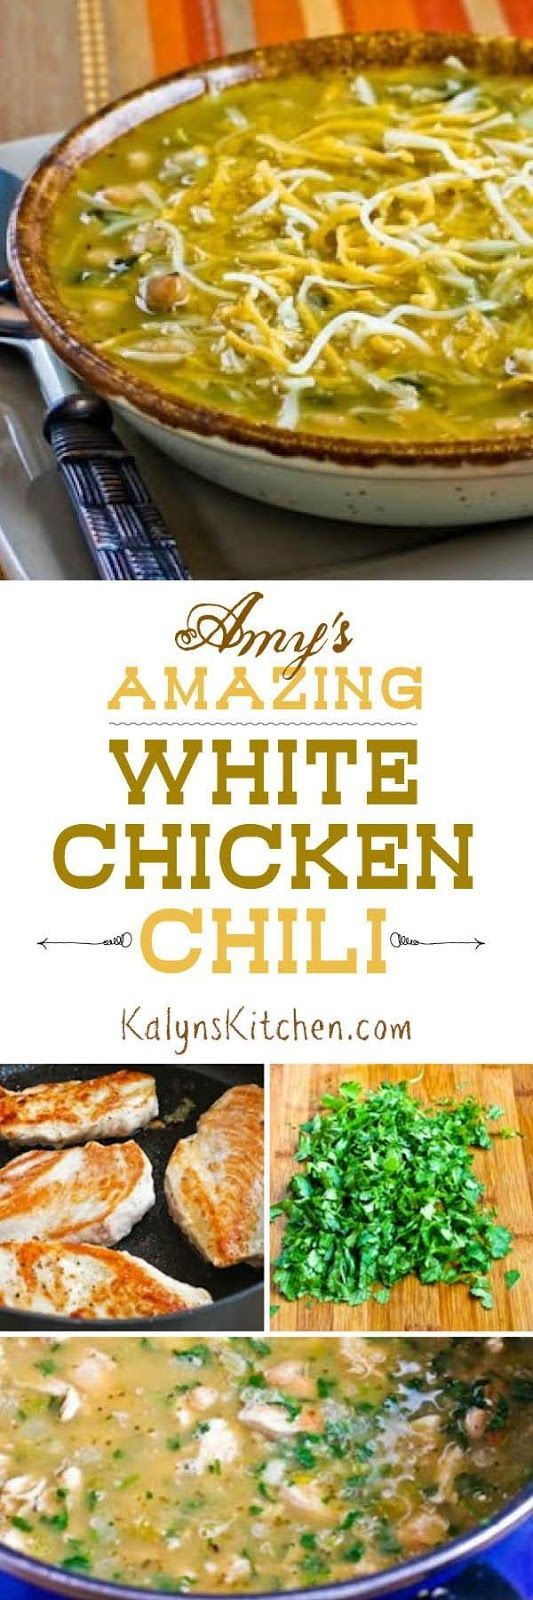 Amy's Amazing White Chicken Chili is a recipe I got from my sister-in-law Amy, and this recipe really is amazing. You can make it with leftover rotisserie chicken or turkey as well if you have some on hand. For a lower-carb version, use more chicken and only one can of beans. [found on KalynsKitchen.com]